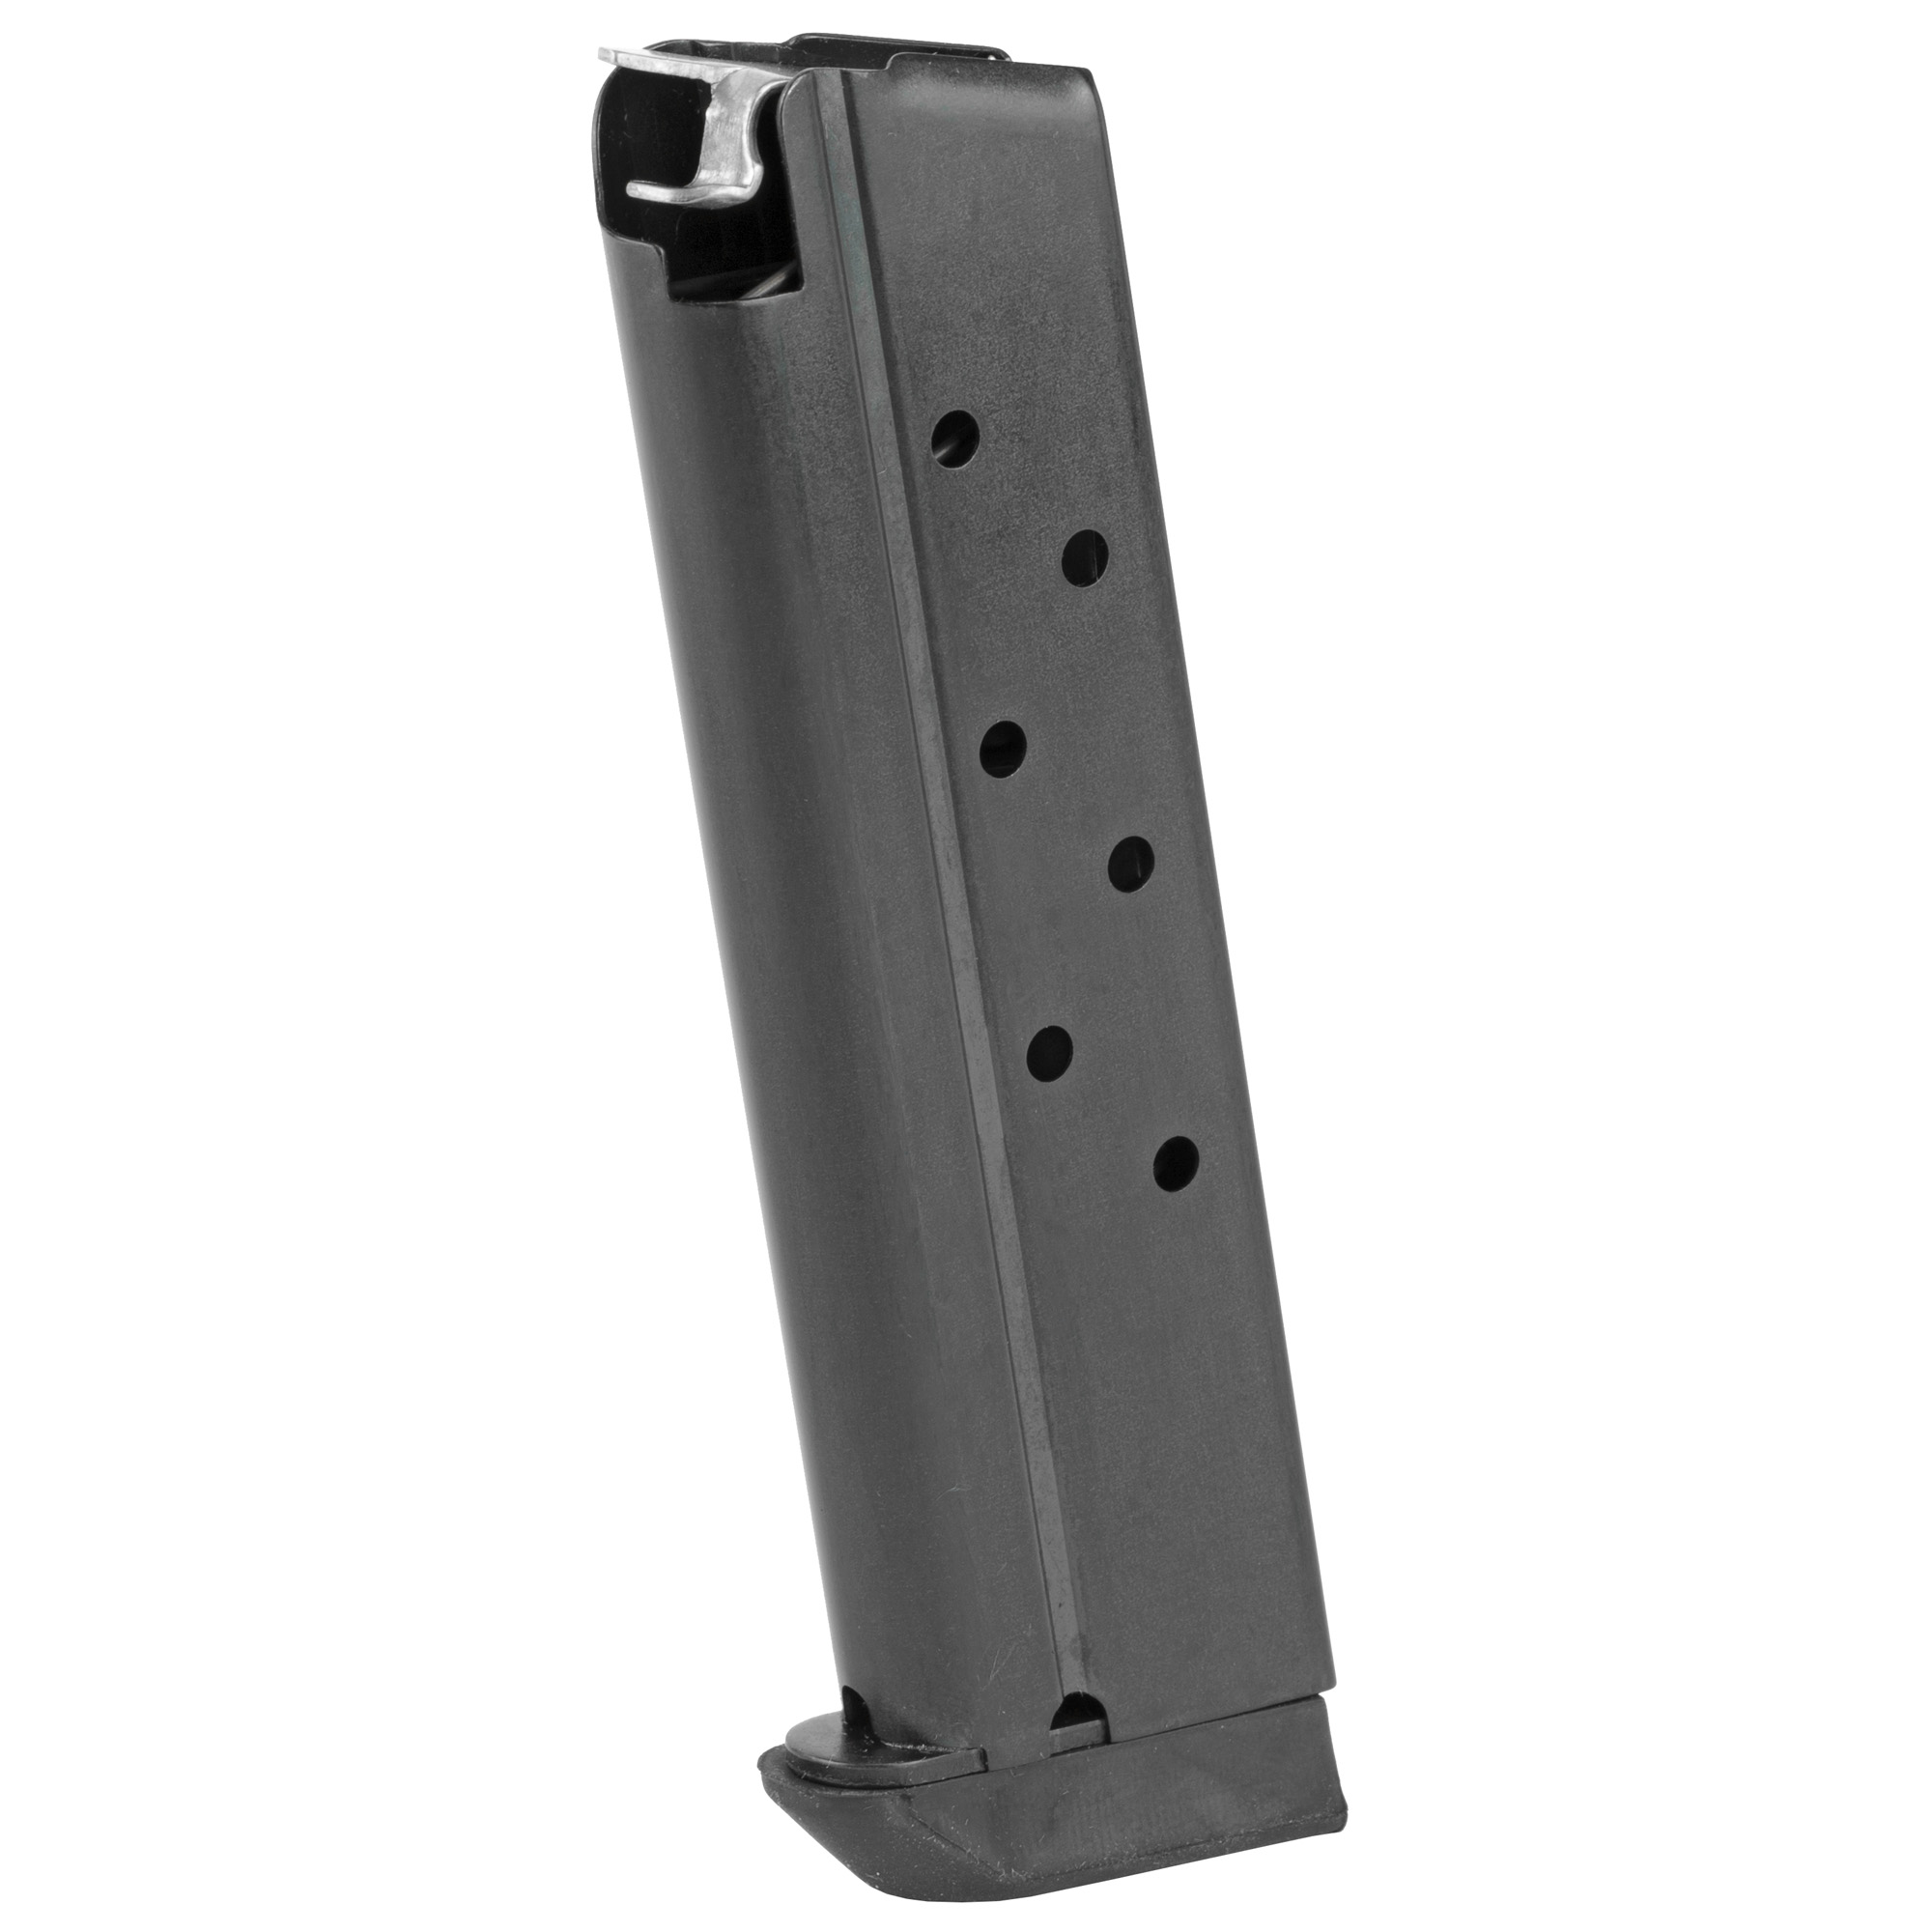 """The Rock Island Armory 1911 Full size Magazine is a standard factory replacement magazine. This magazine is for single stack 1911 models chambered in .40S&W and holds 8 rounds of ammunition. It is made of steel and is made to Armscor/Rock Island Armory specifications and tolerances"""" using the same manufacturing and materials as the original equipment magazines"""" ensuring perfect fit and operation."""